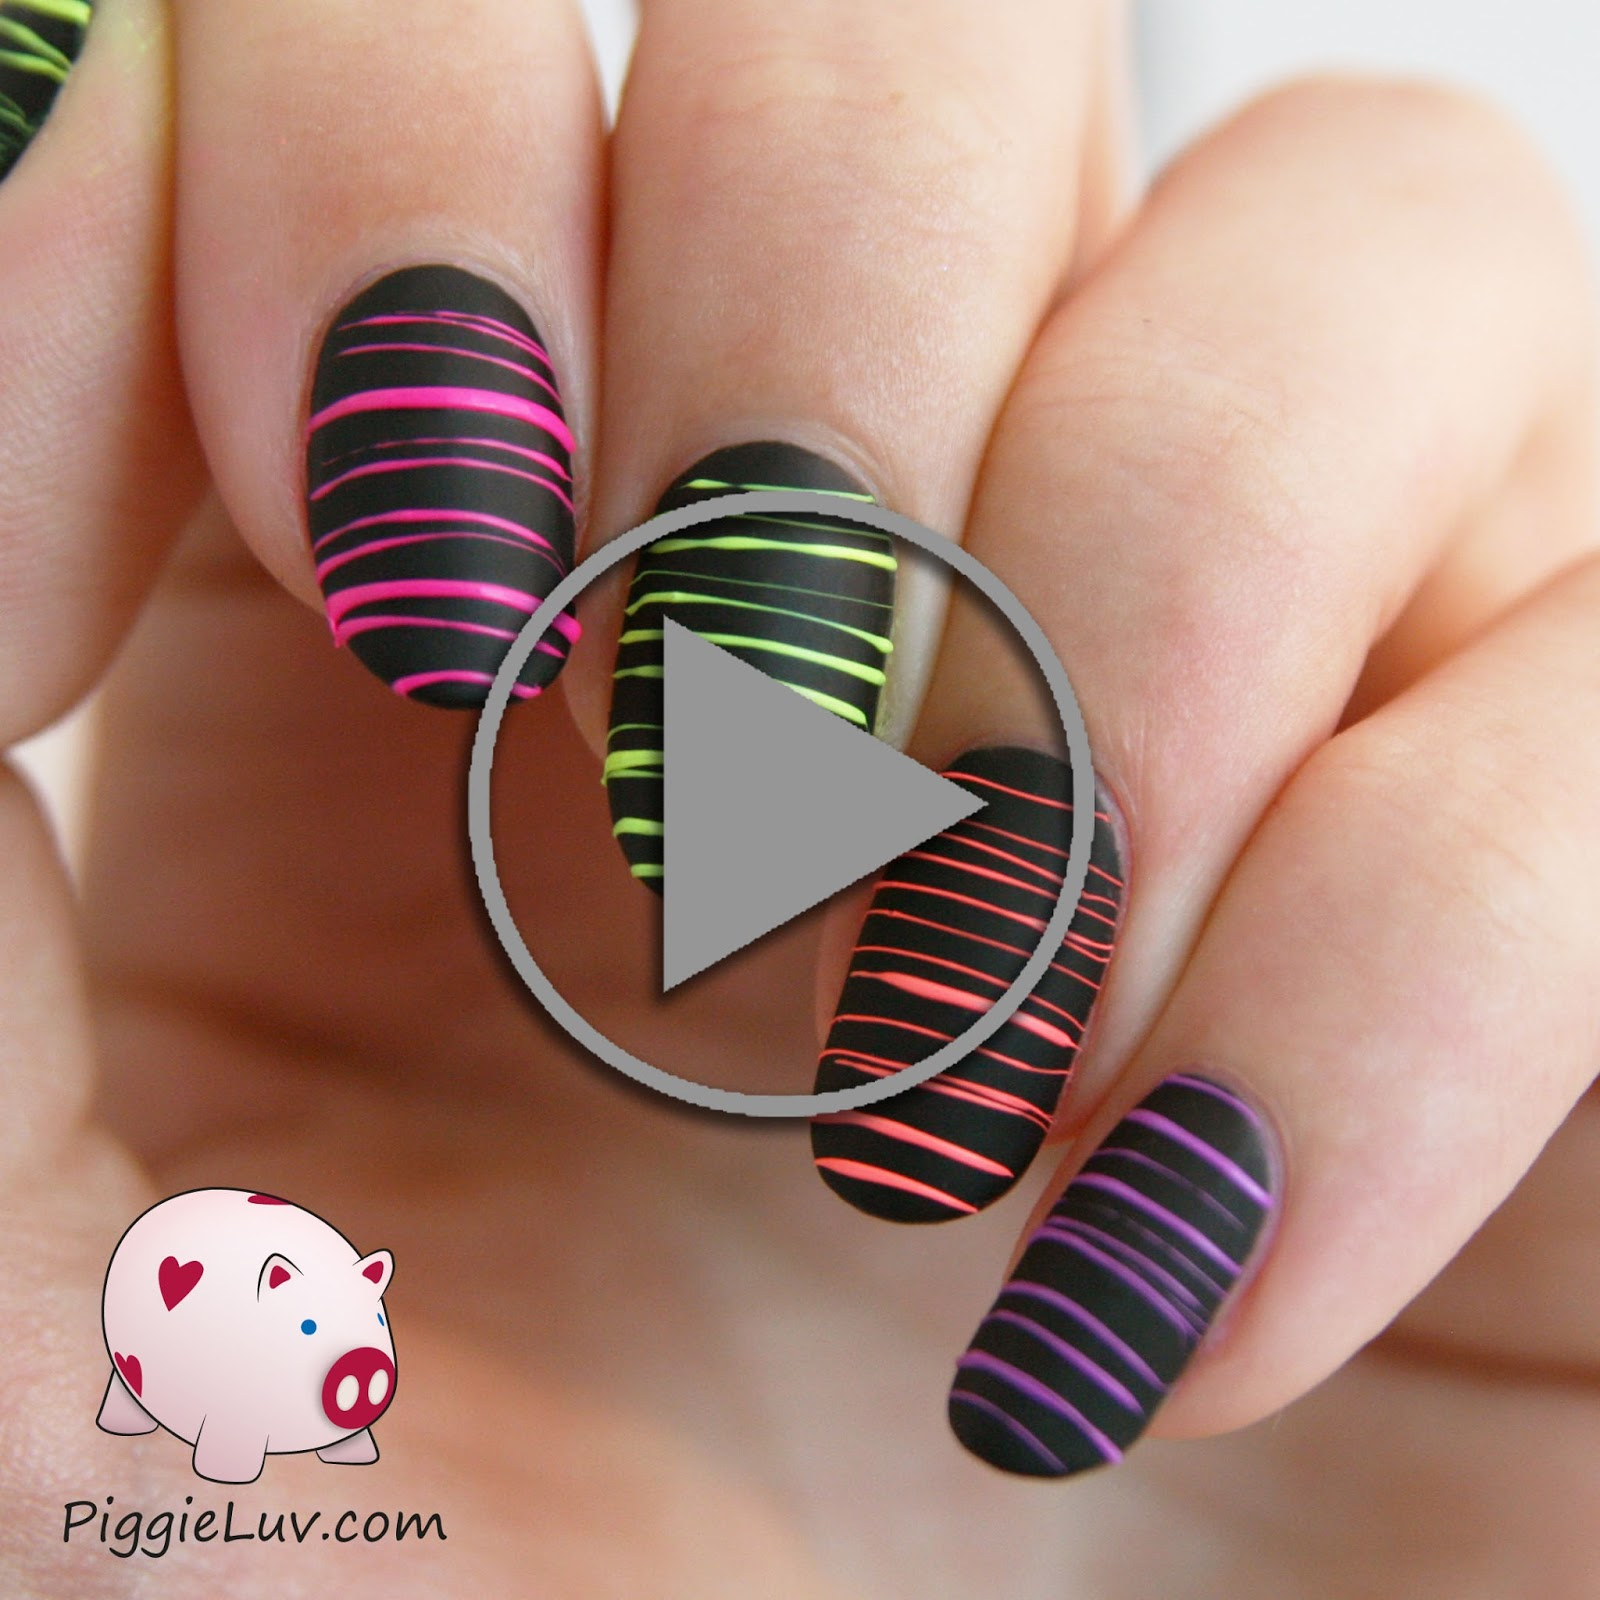 PiggieLuv: Video tutorial: neon sugar spun nail art